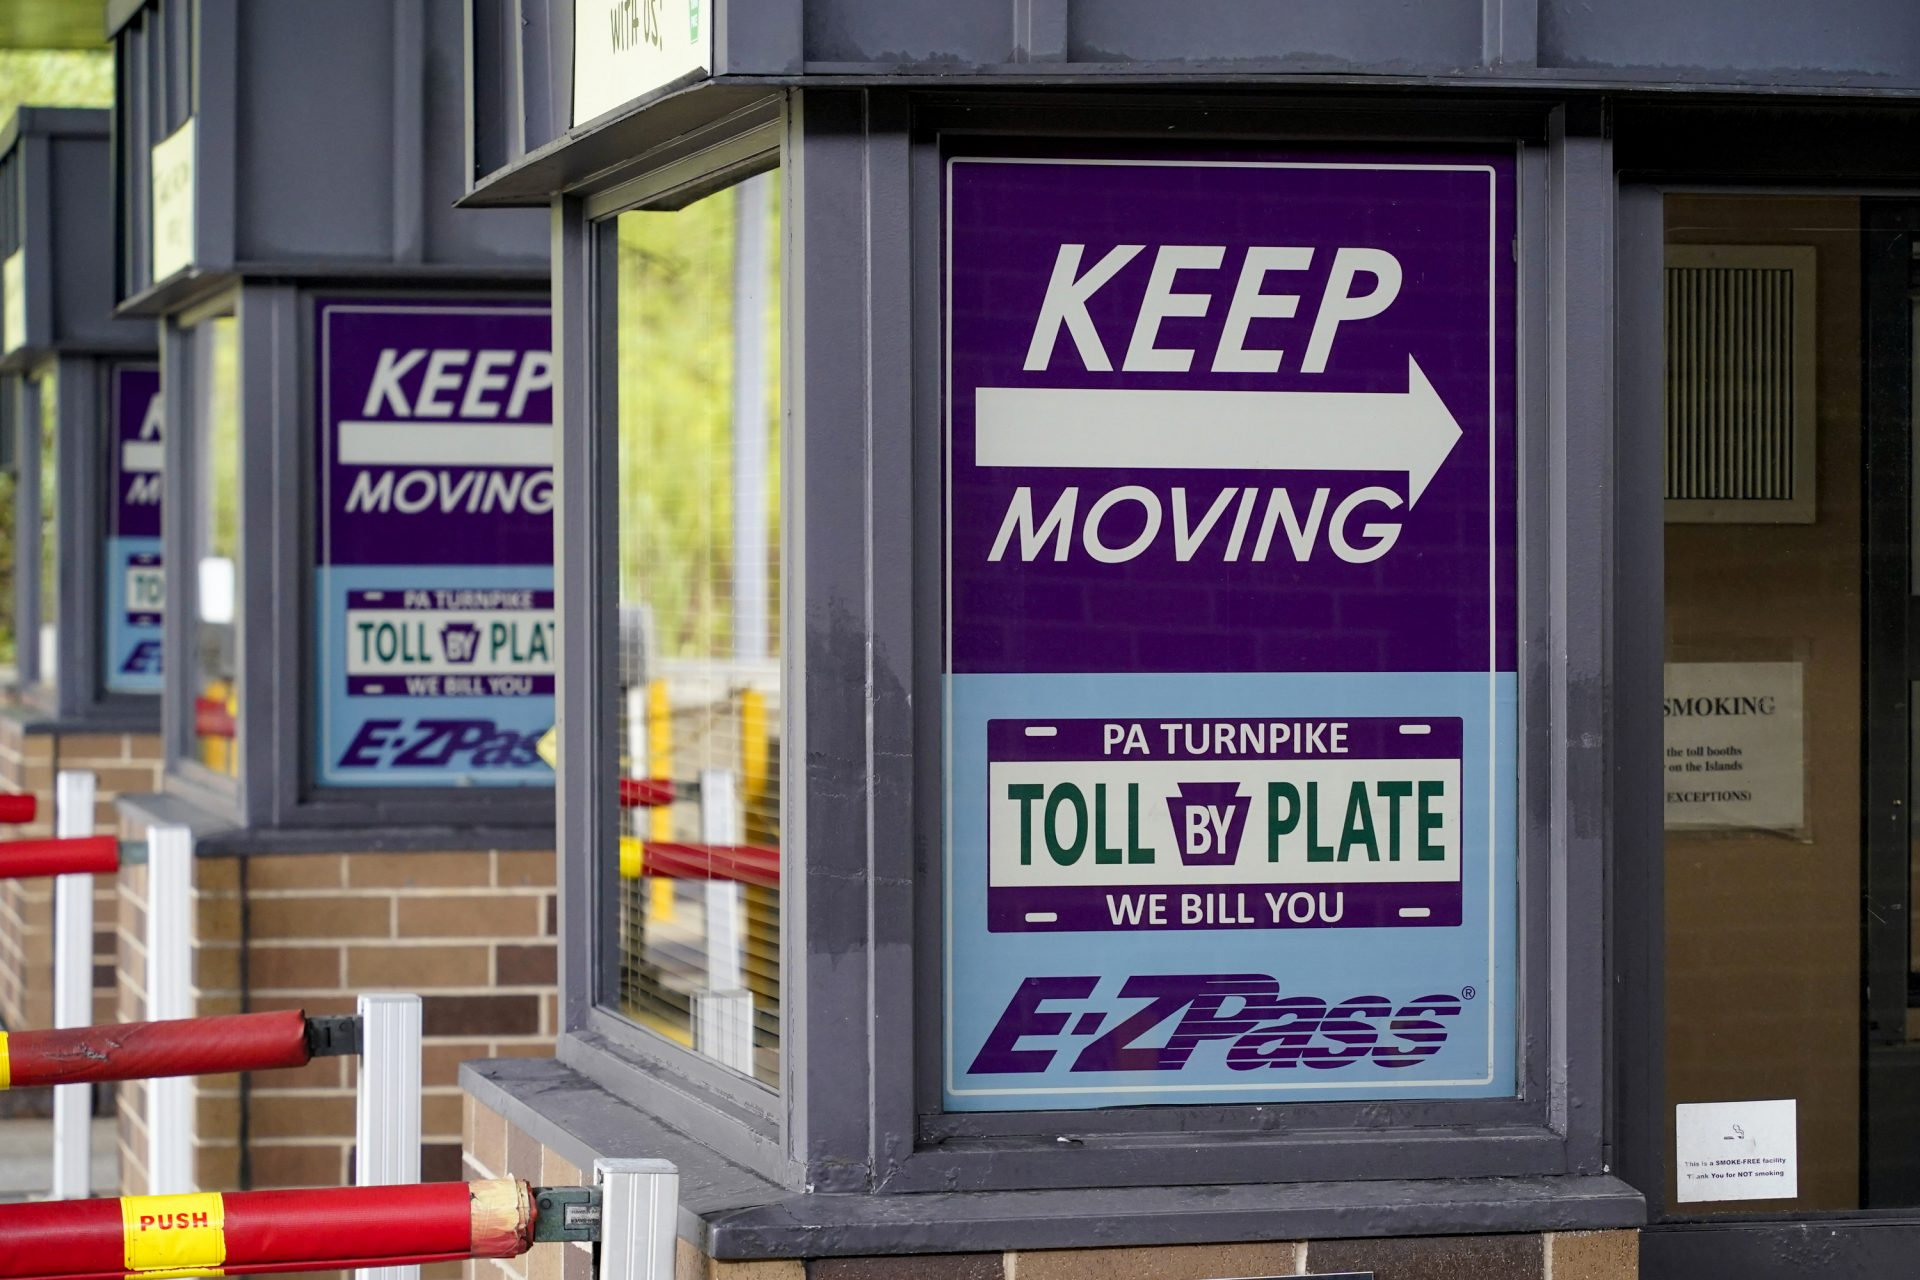 Signs on the electronic toll booths indicate to motorists entering the Pennsylvania Turnpike in Gibsonia, Pa. on Monday, Aug. 30, 2021, to keep moving and the methods being used to collect tolls.